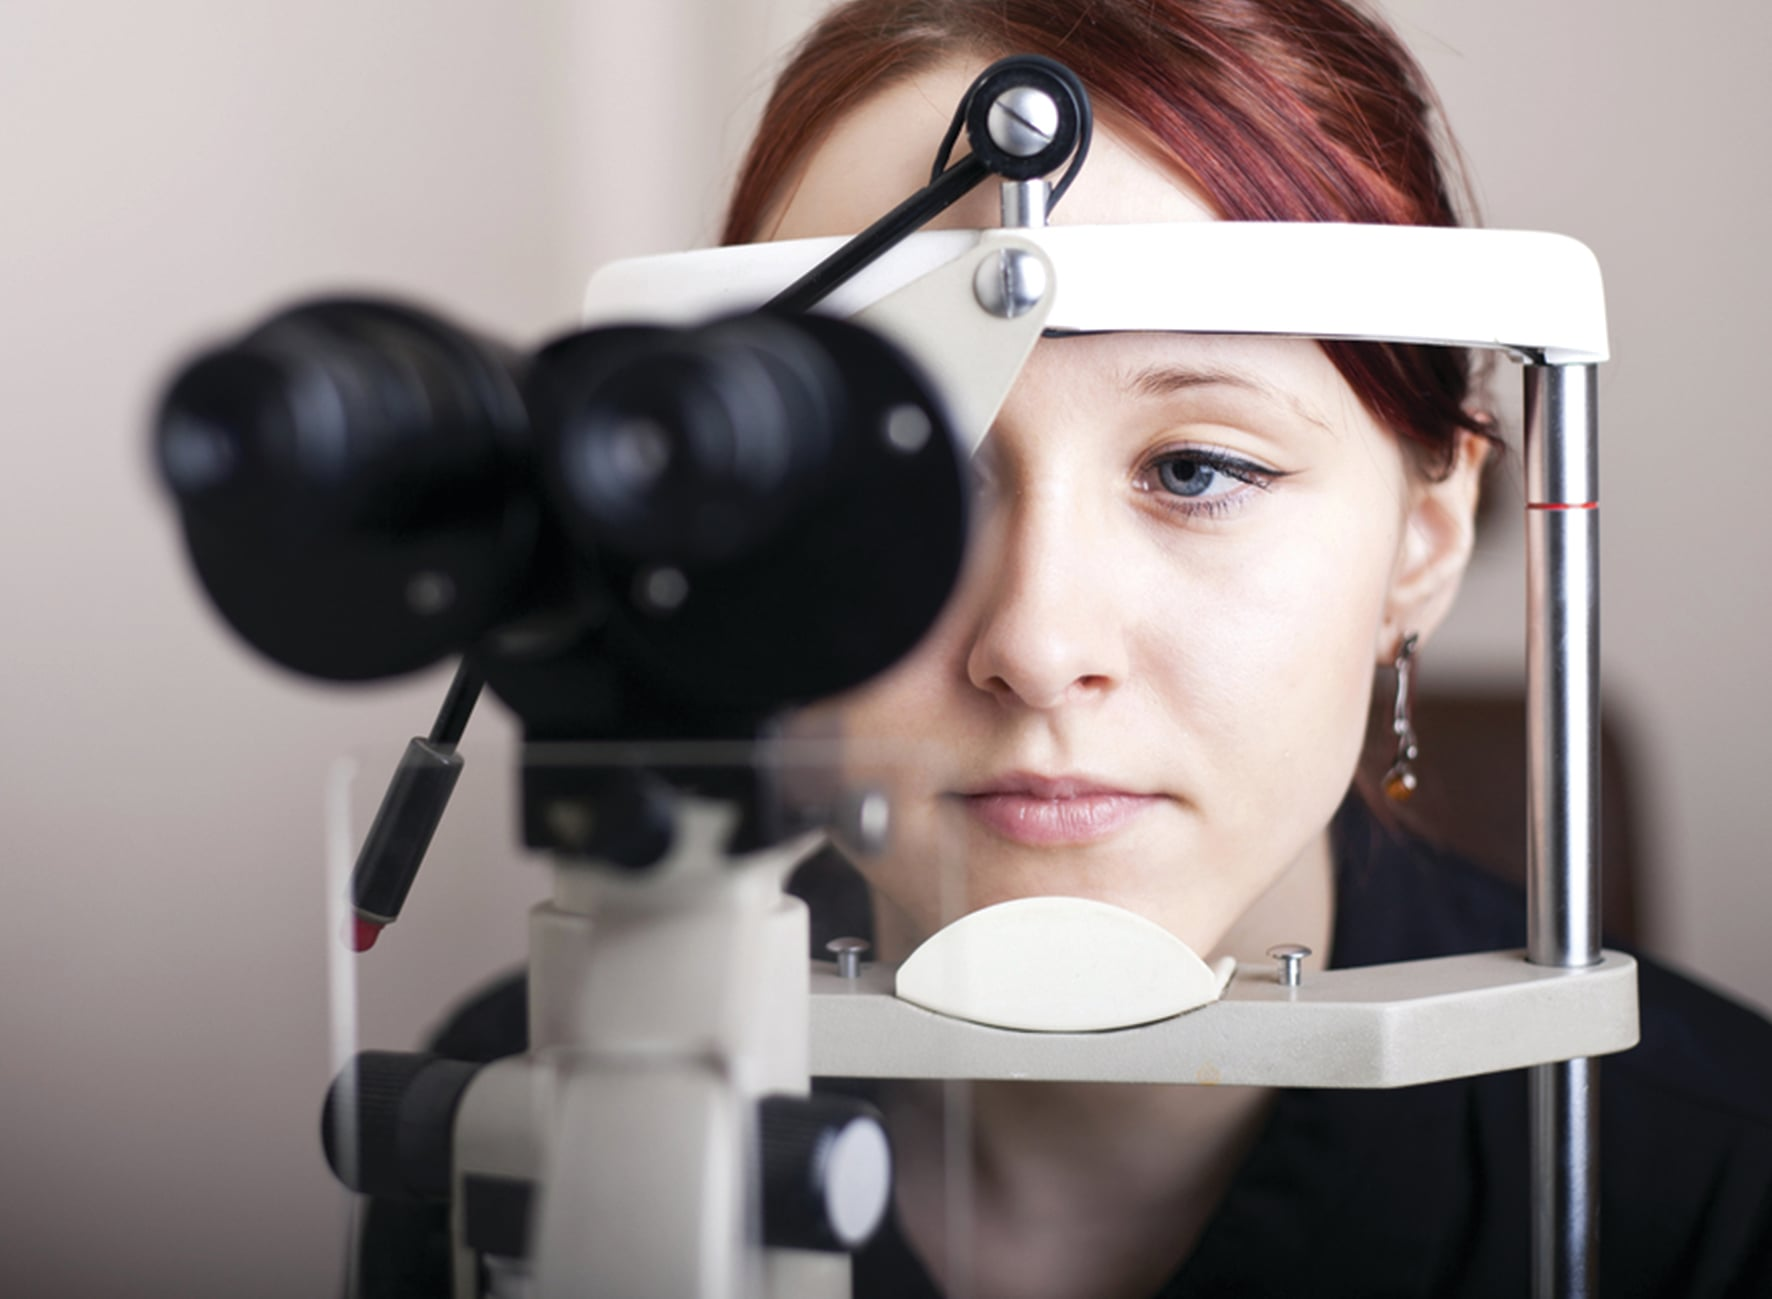 Young woman with brown hair and blue eyes having her eyes tested with her chin resting on an ophthalmometer